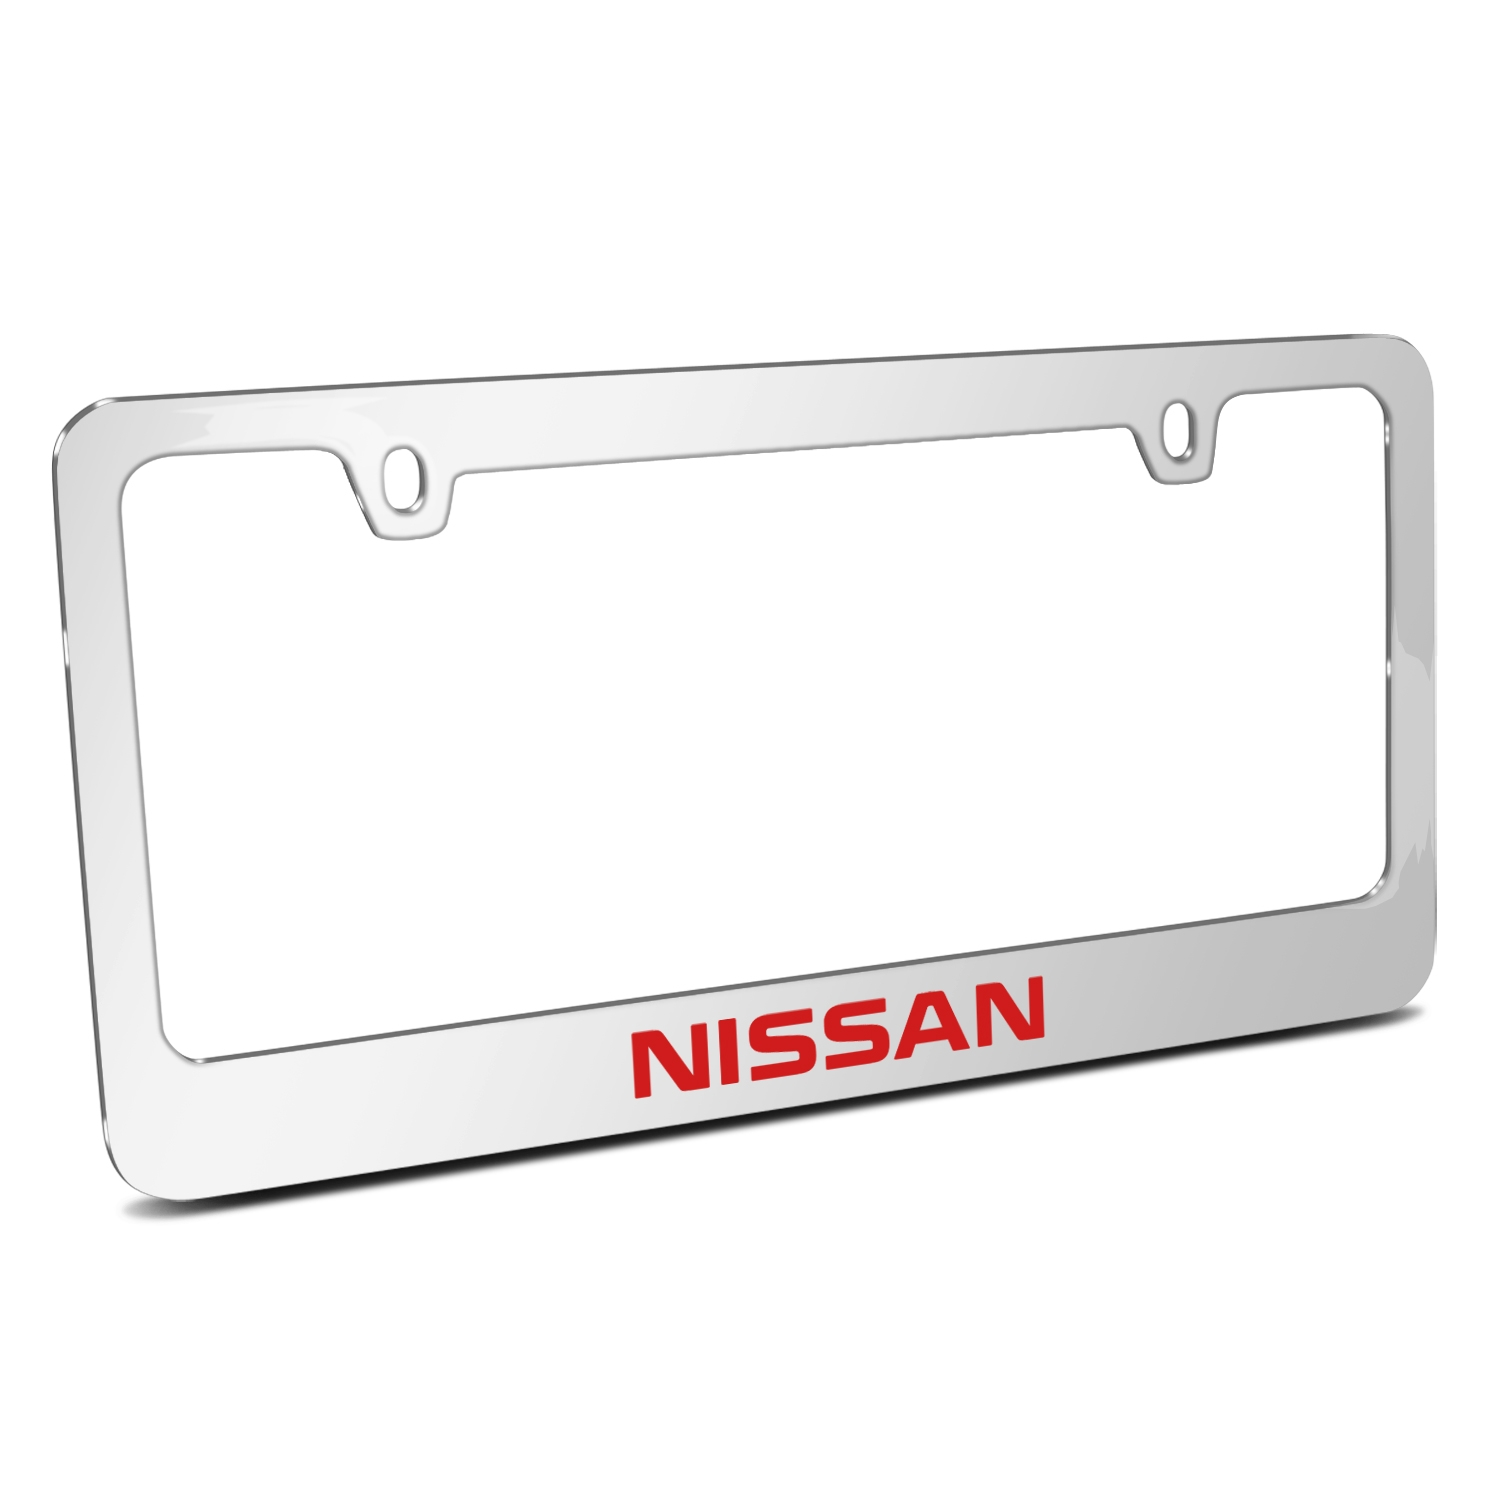 Nissan in Red Mirror Chrome Metal License Plate Frame